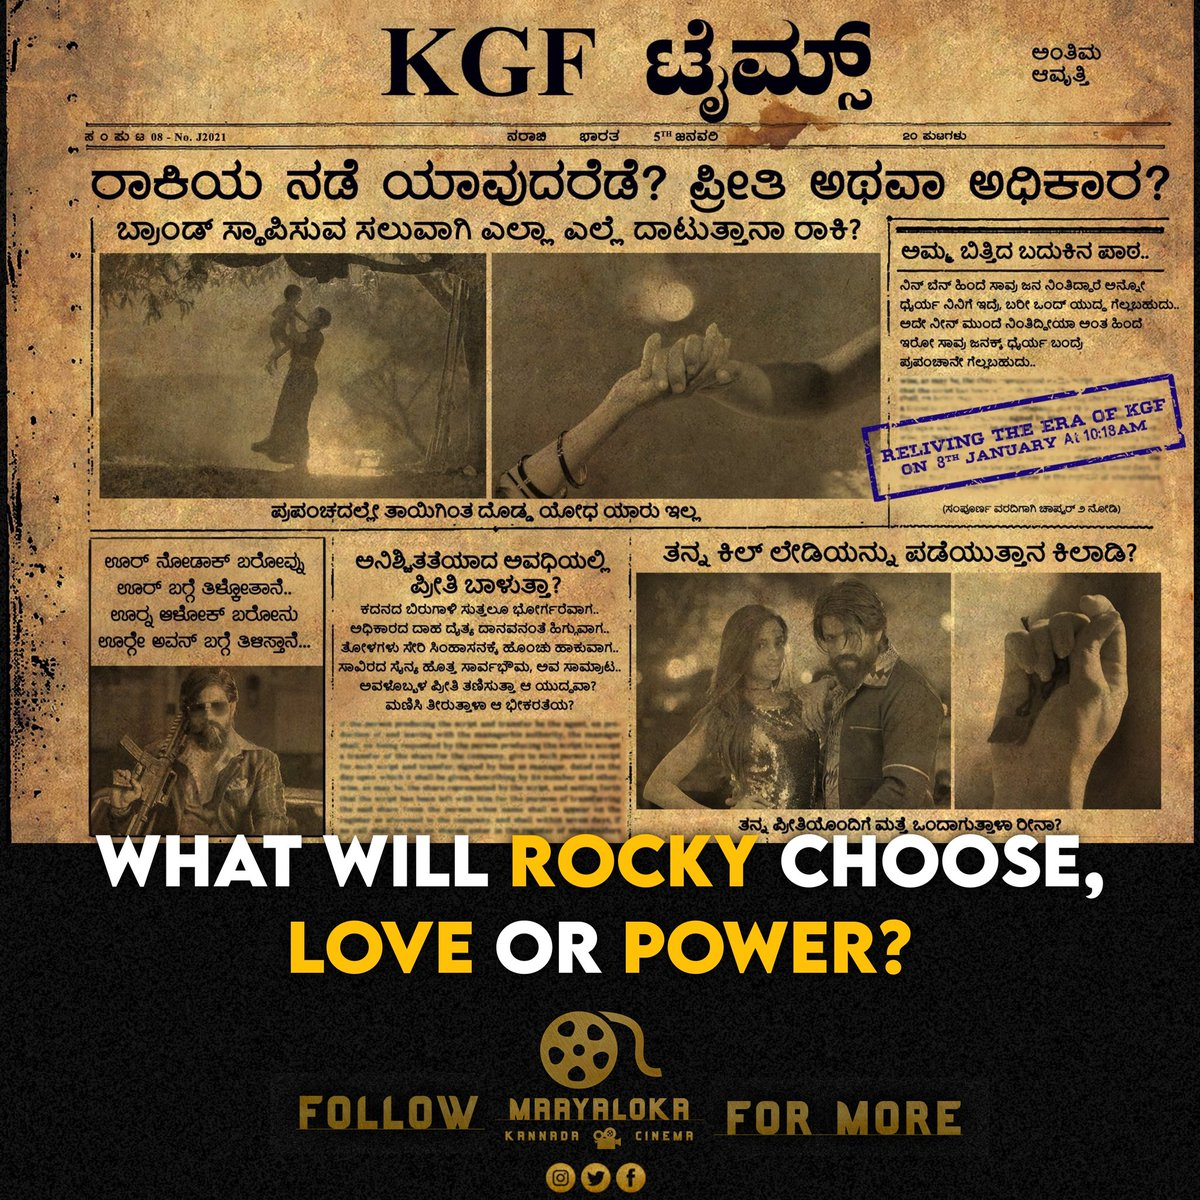 What will Rocky choose, love or power? #KGFTIMES #Volume2  #KGFChapter2TeaserOnJan8 @hombalefilms YT Channel @VKiragandur @TheNameIsYash @prashanth_neel @duttsanjay @TandonRaveena @hombalefilms @bhuvangowda84 @excelmovies @BasrurRavi @ritesh_sid @FarOutAkhtar @VaaraahiCC #AAFilms